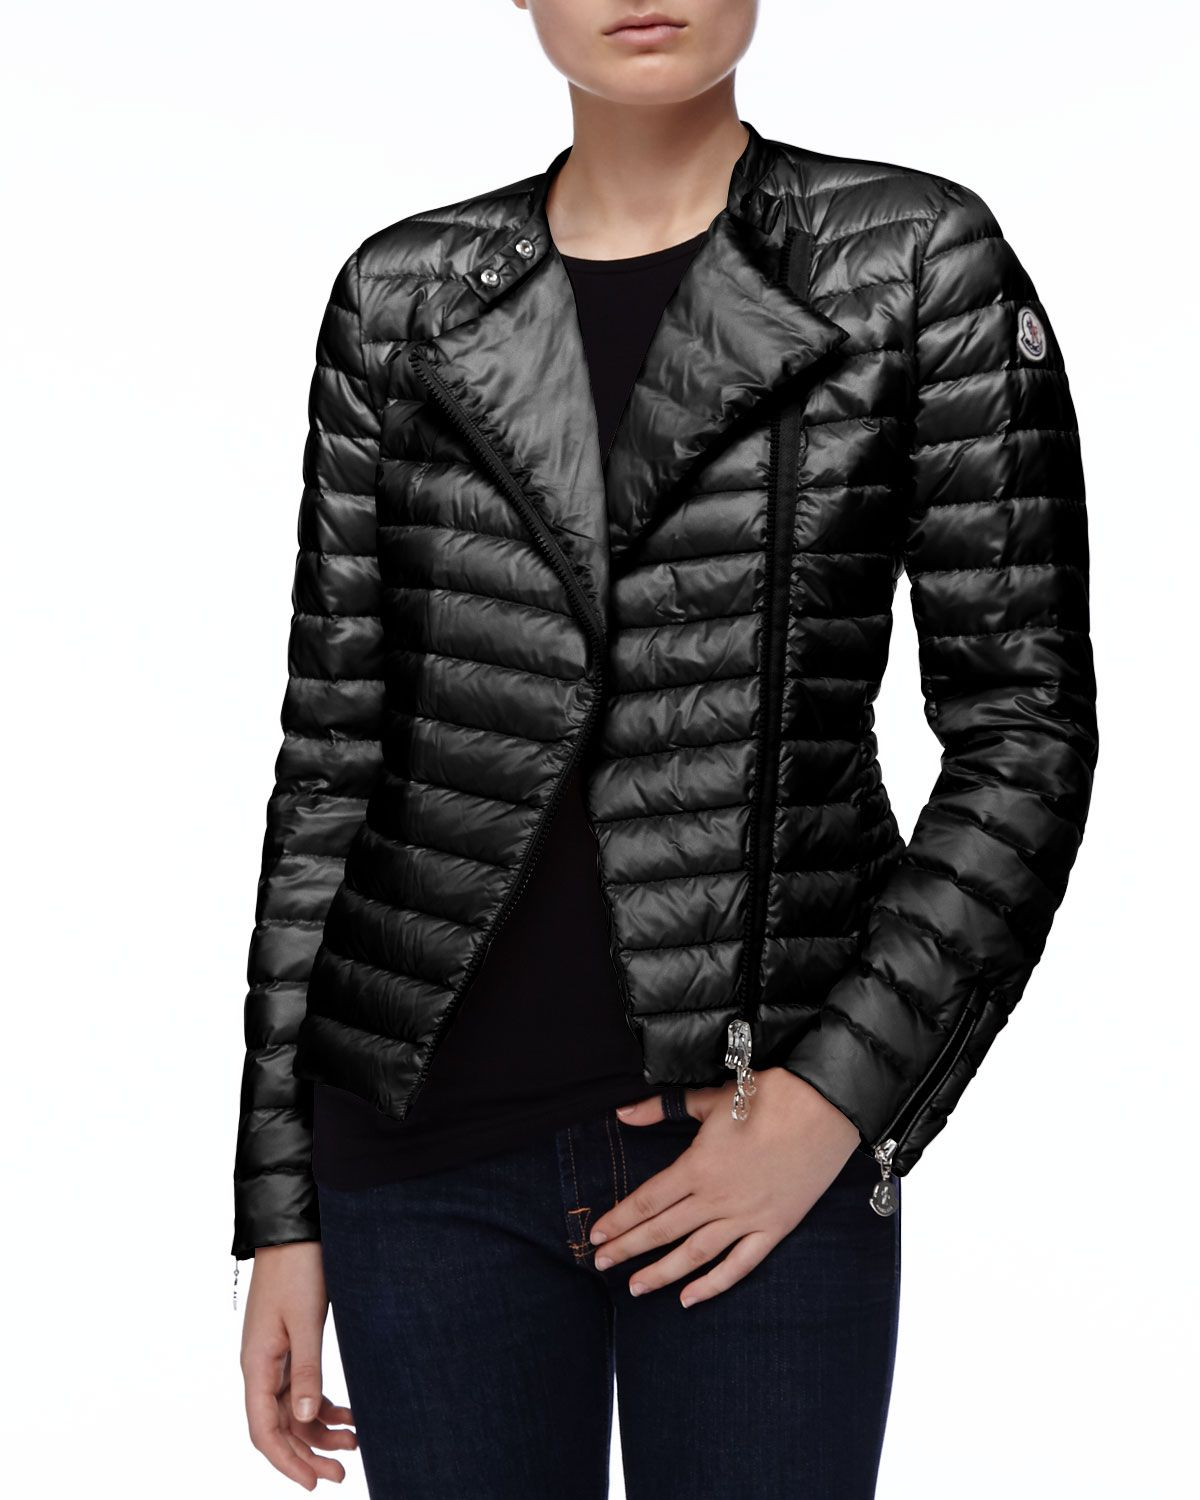 ce3e85a76 Asymmetric-Zip Puffer Jacket Black | Jacket and Coats | Puffer ...